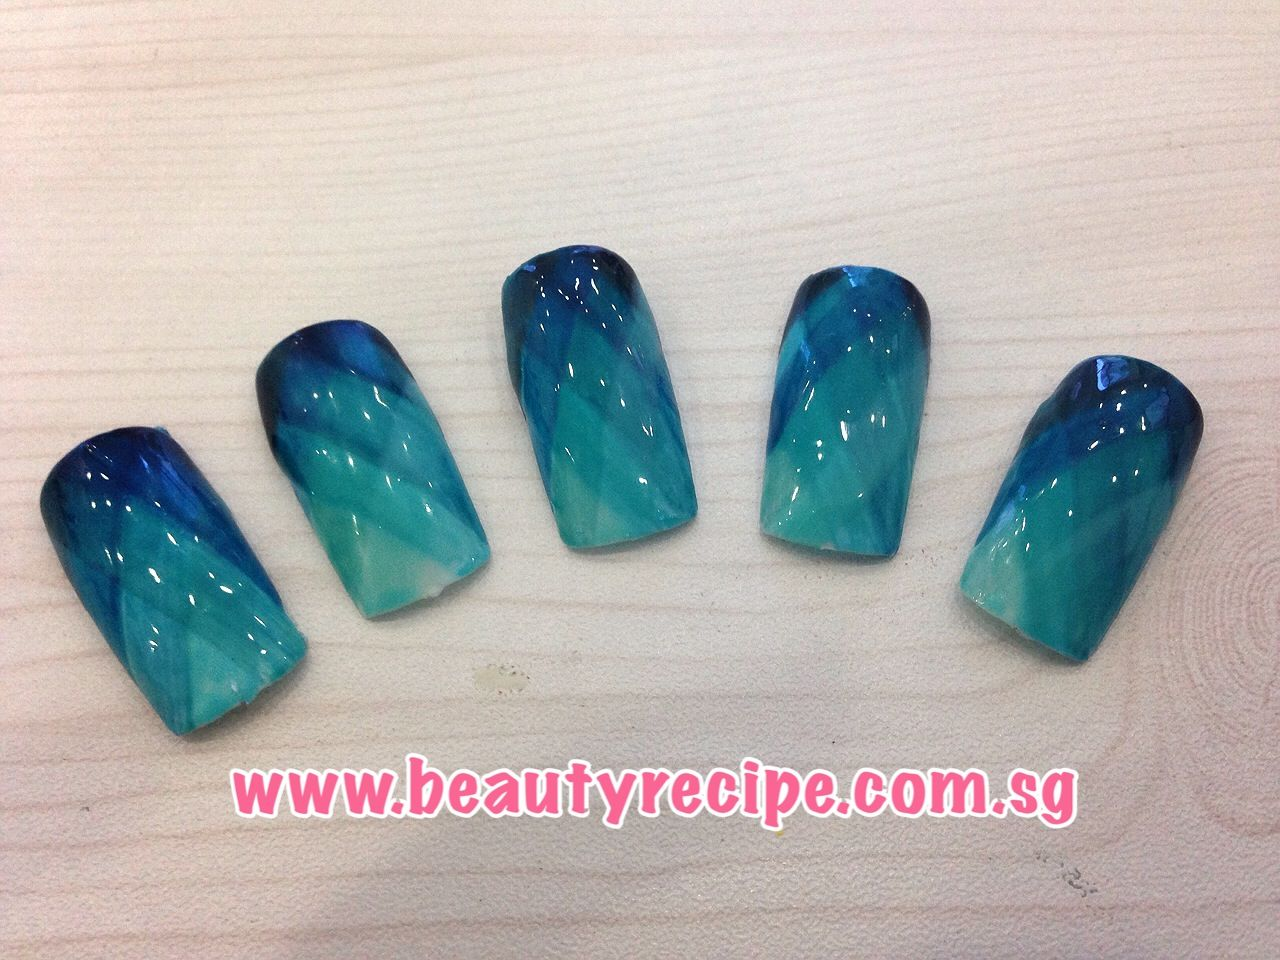 Nail art design tutorial graduation gel nails of diamond shapers nail art design tutorial graduation gel nails of diamond shapers from light to dark on the prinsesfo Image collections